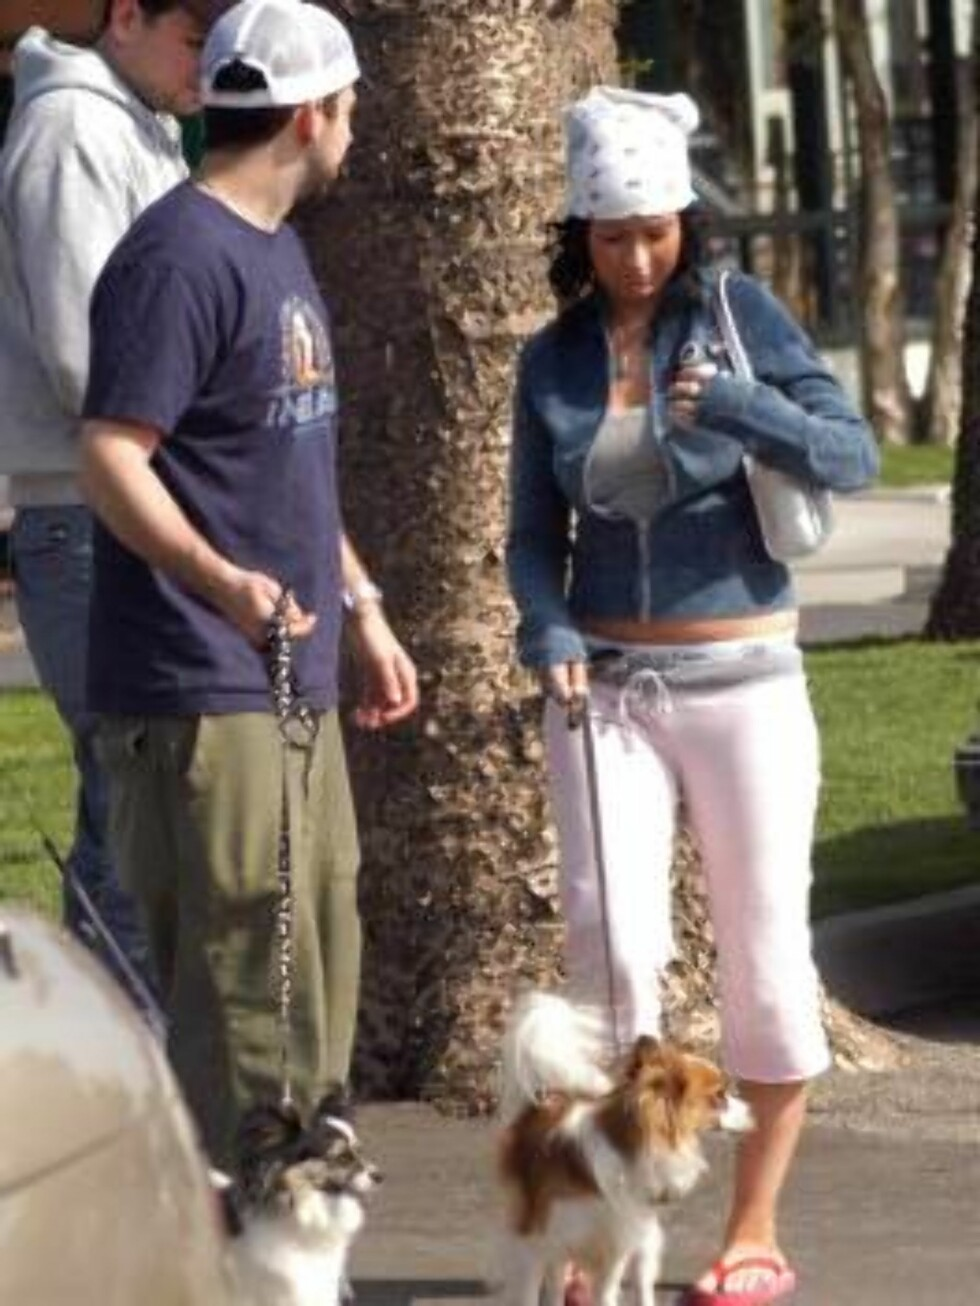 Christina Aguilera and her new boyfriend Jordan Bratman take her dogs for a walk at the Malibu Country Mart.  Aguilera has been linked to Bratman, who works at her record label, for almost a month.  Meanwhile, Aguilera shows off her new curves in hip-hugg Foto: All Over Press